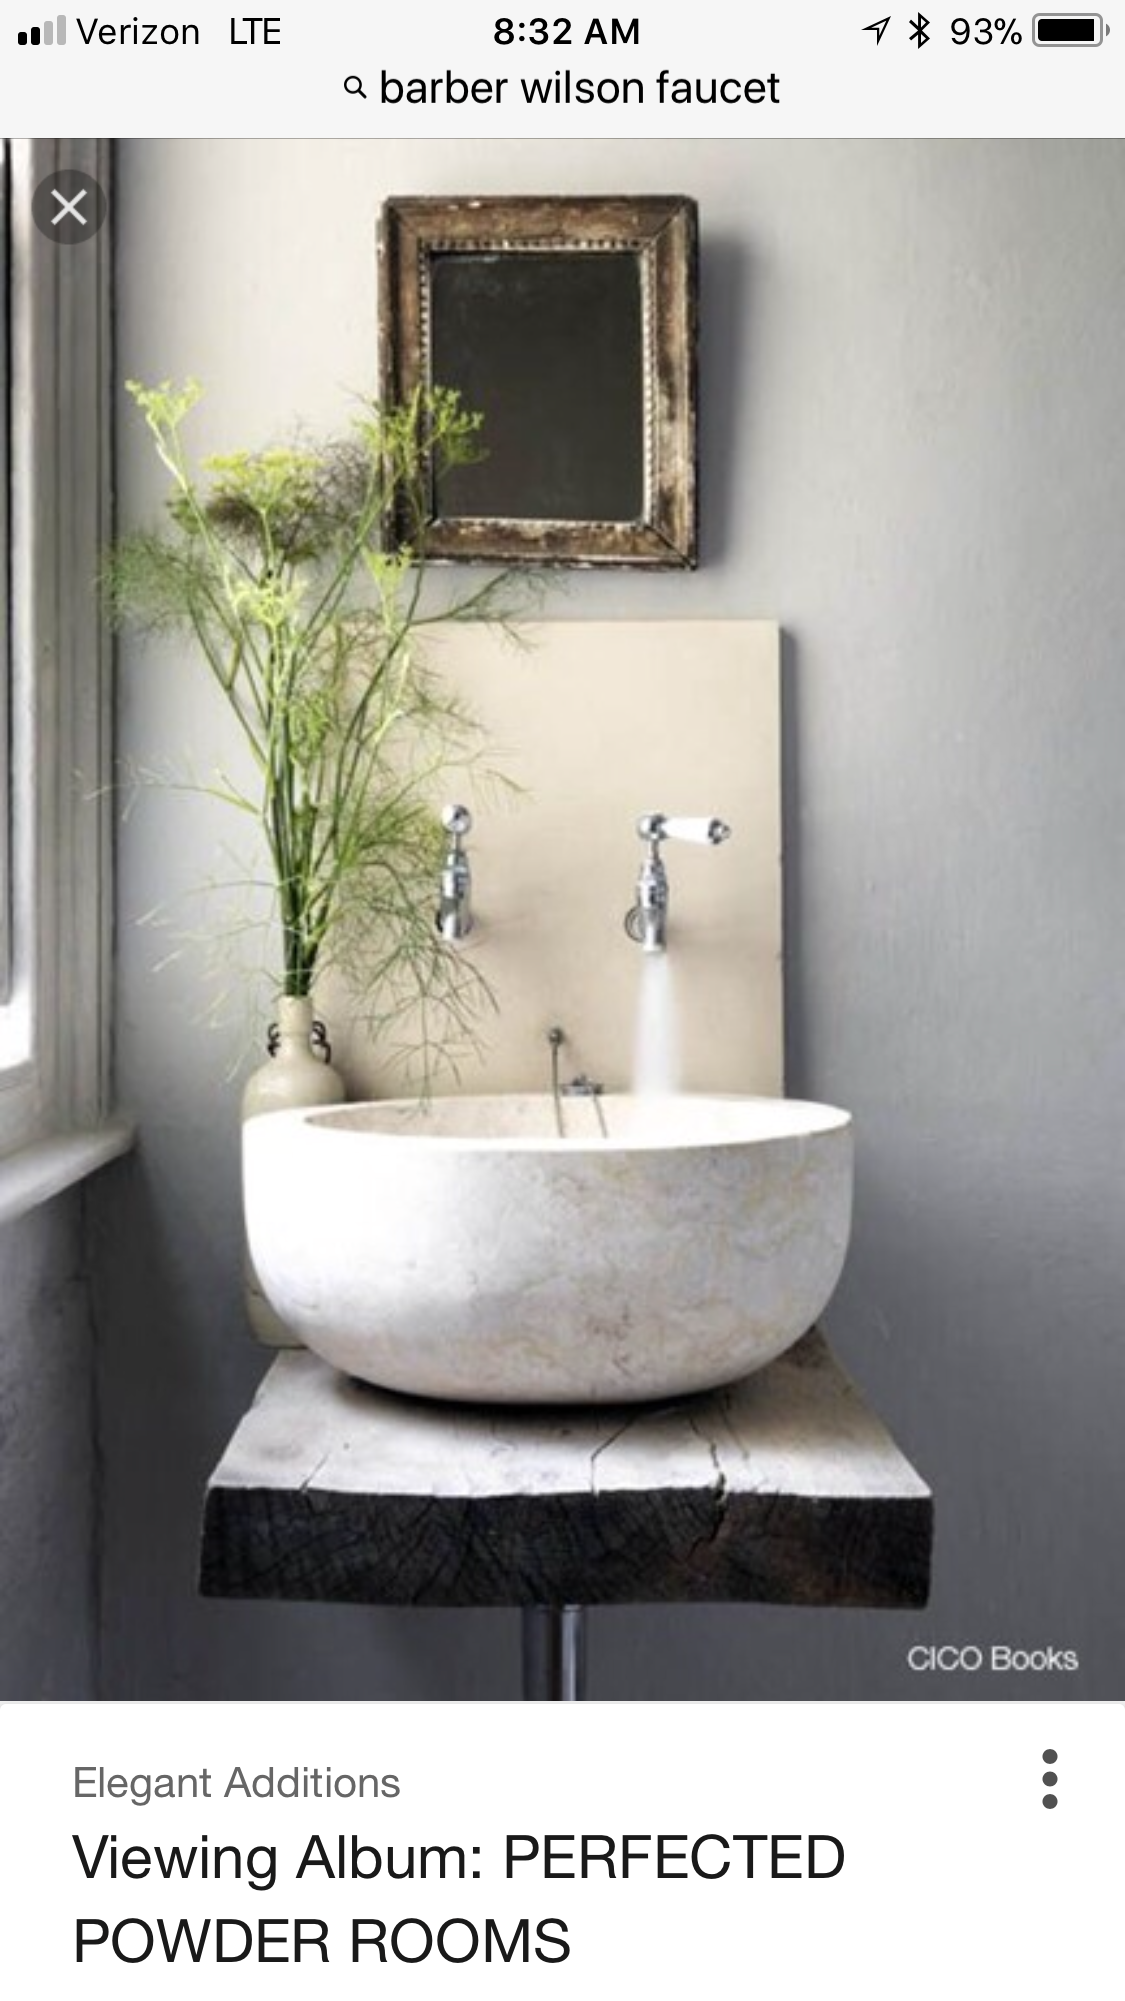 Bathroom sink bowls bowl sink vanity concrete sink bathroom hipster bathroom earthy